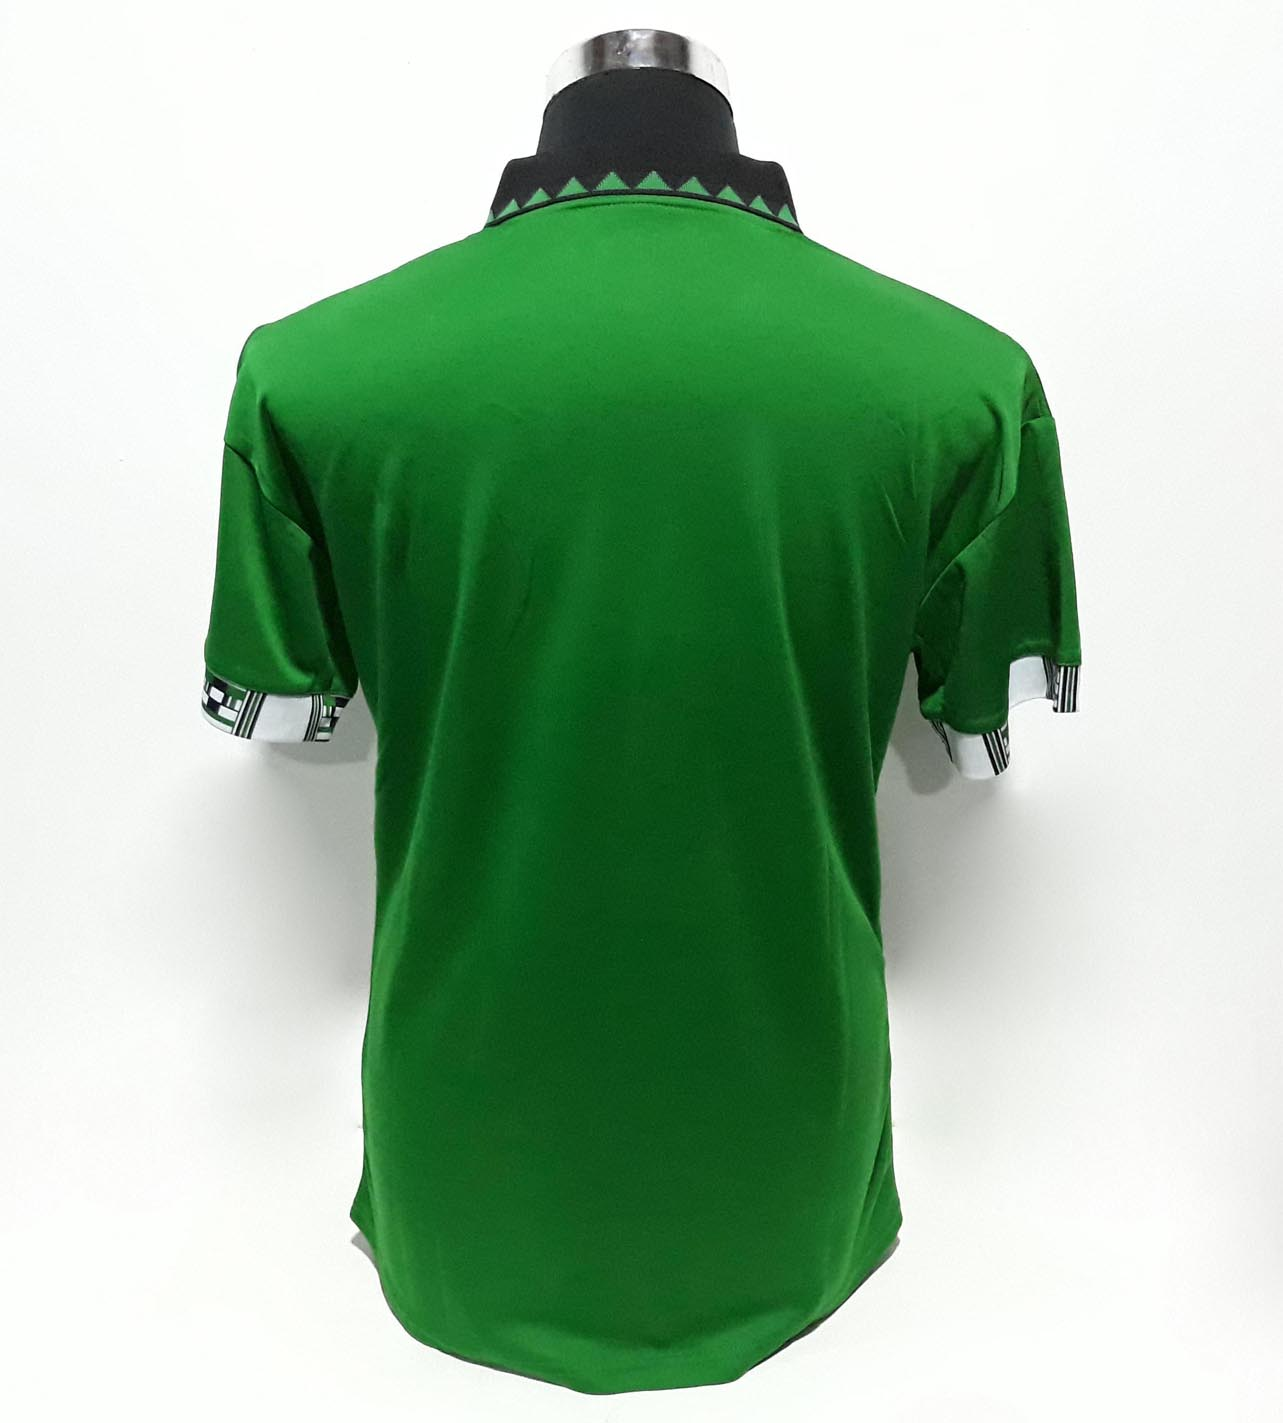 e073b13dd6 Nigeria1994 World Cup Away Jersey back - mysportskit